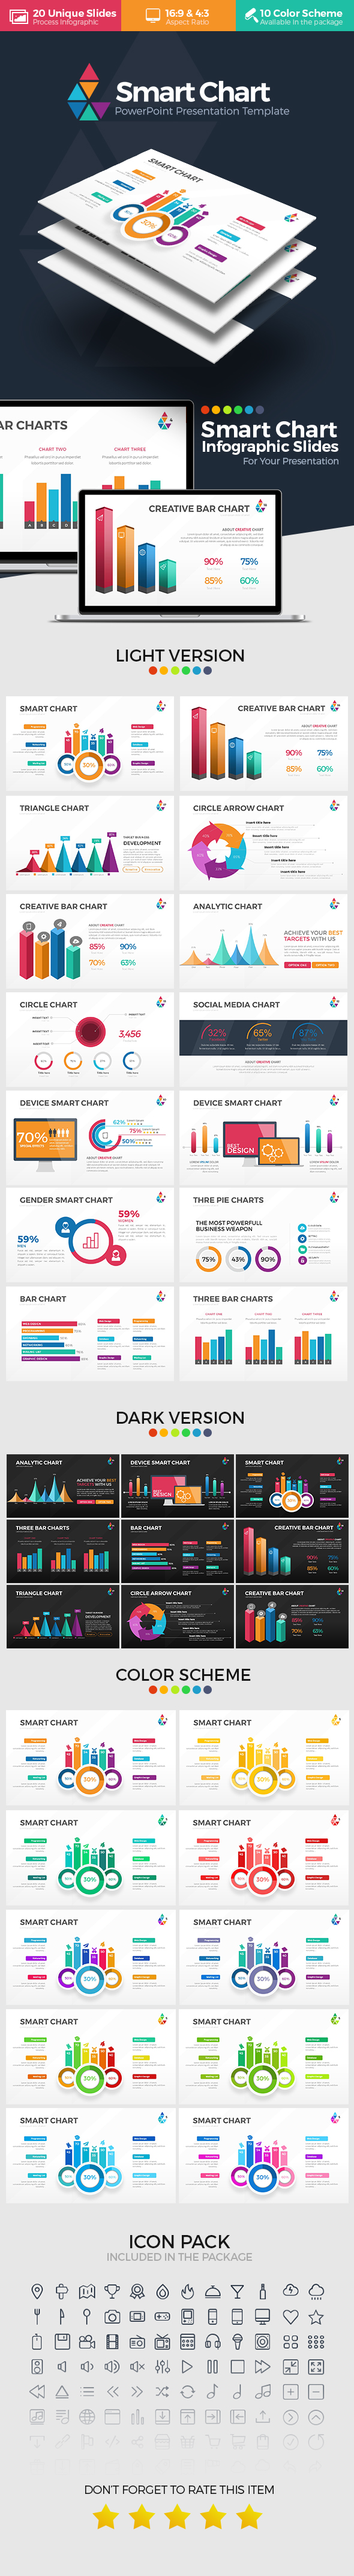 Charts amp Infographics PowerPoint Templates